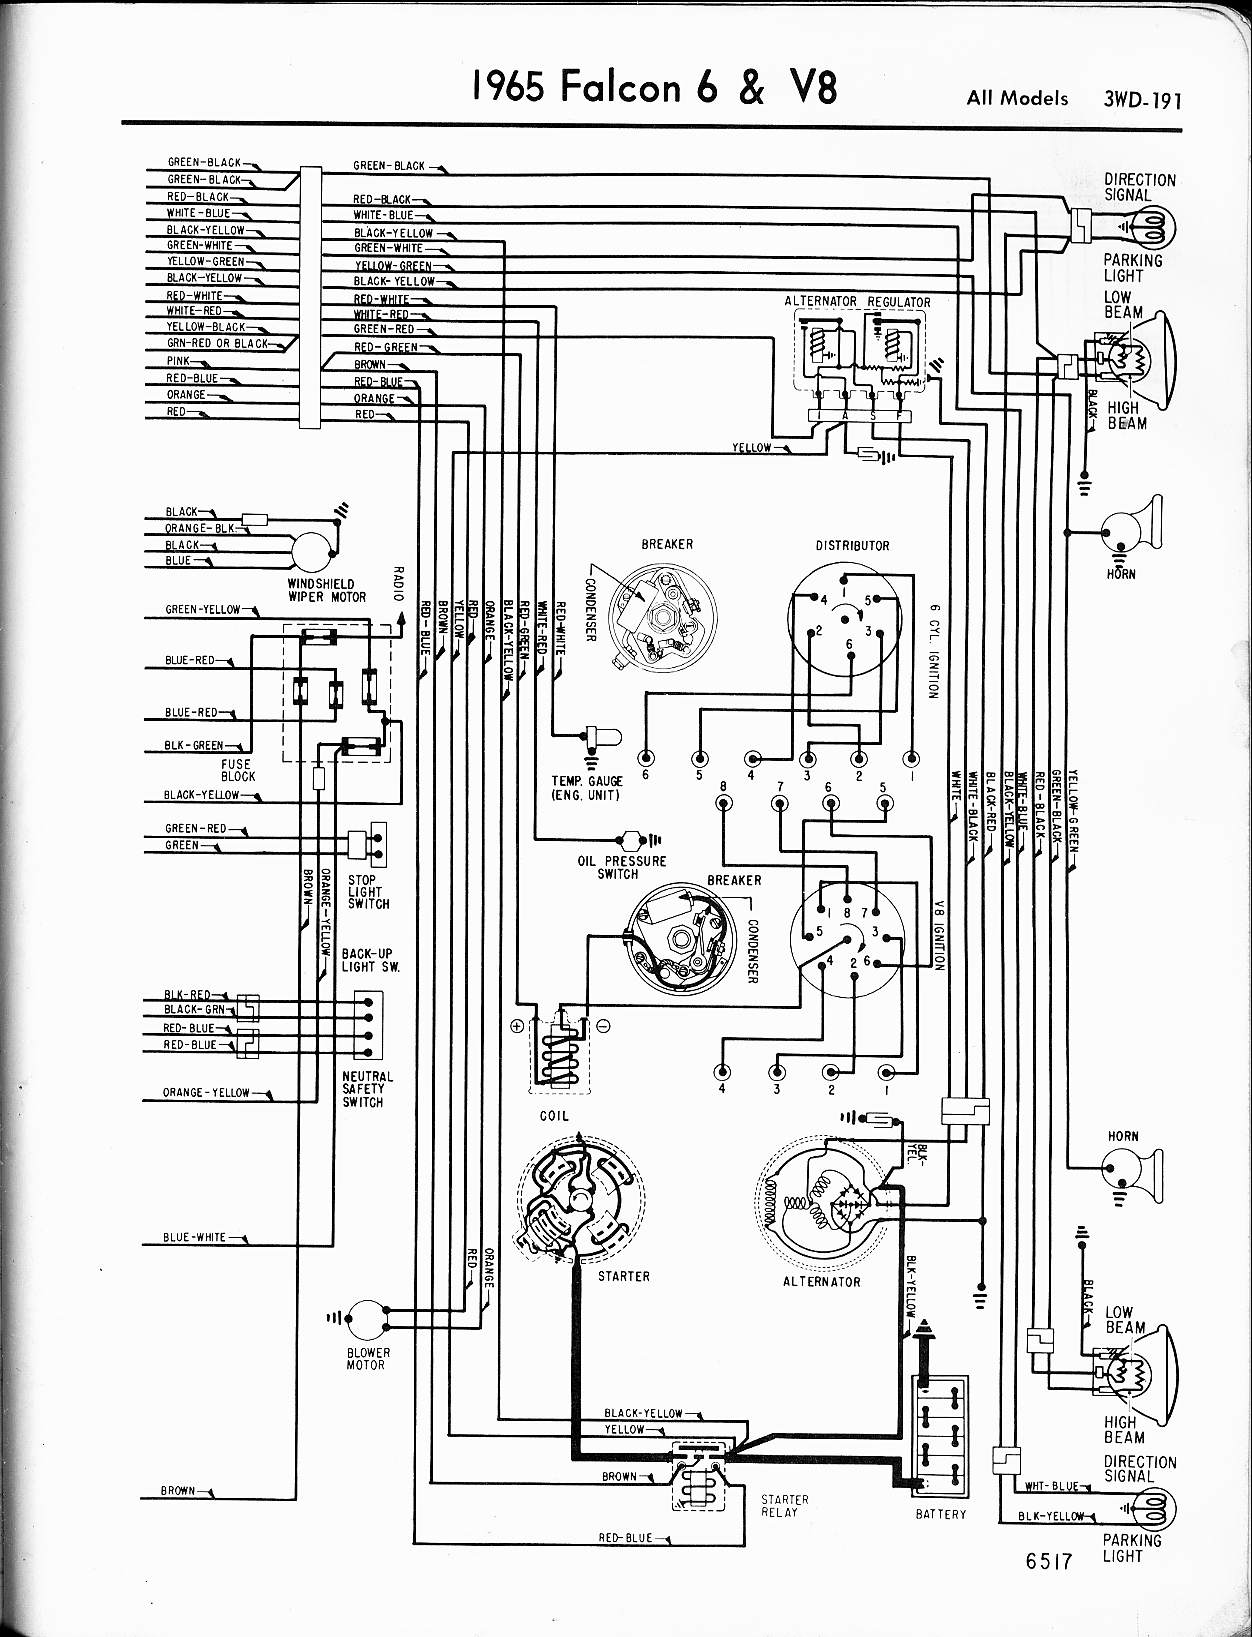 Wiring Diagram For 1966 Ford Ltd Archive Of Automotive 1968 F250 Diagrams Heater Galaxie Just Data Rh Ag Skiphire Co Uk